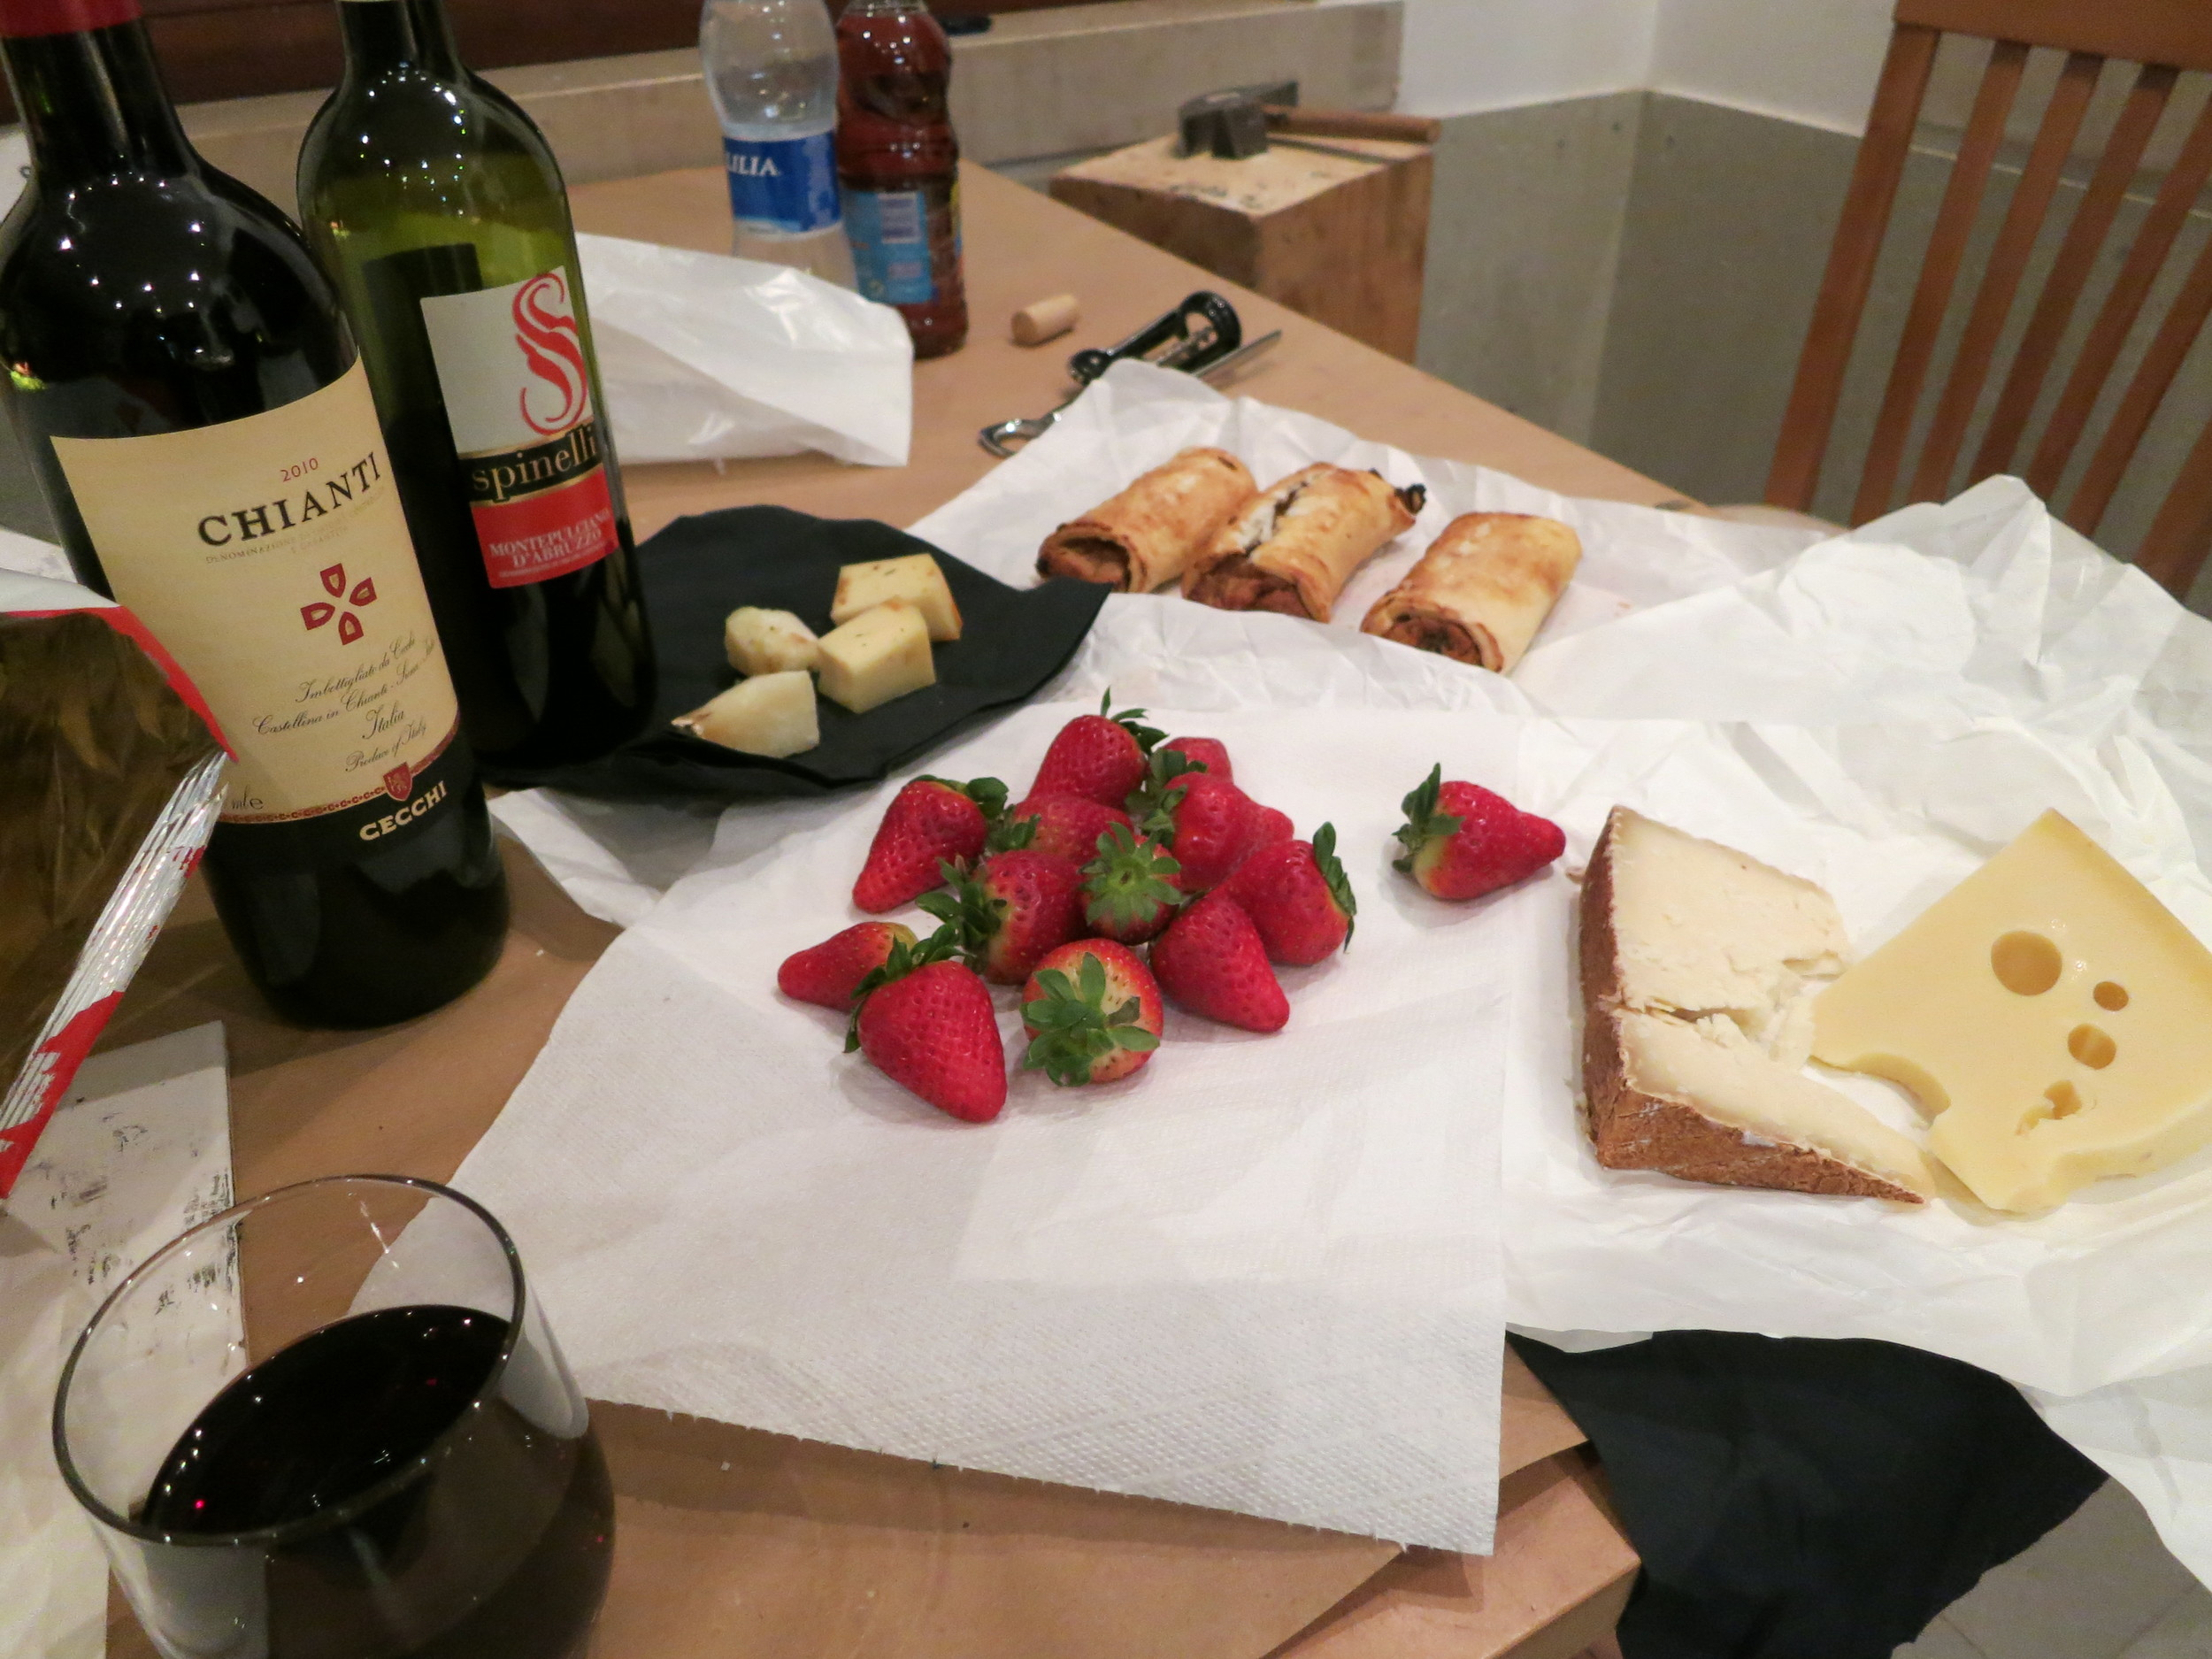 This is how we worked late at night: amazing Italian wine, fabulous cheese, fruit and pastries...and endless Bocelli or Vivaldi!